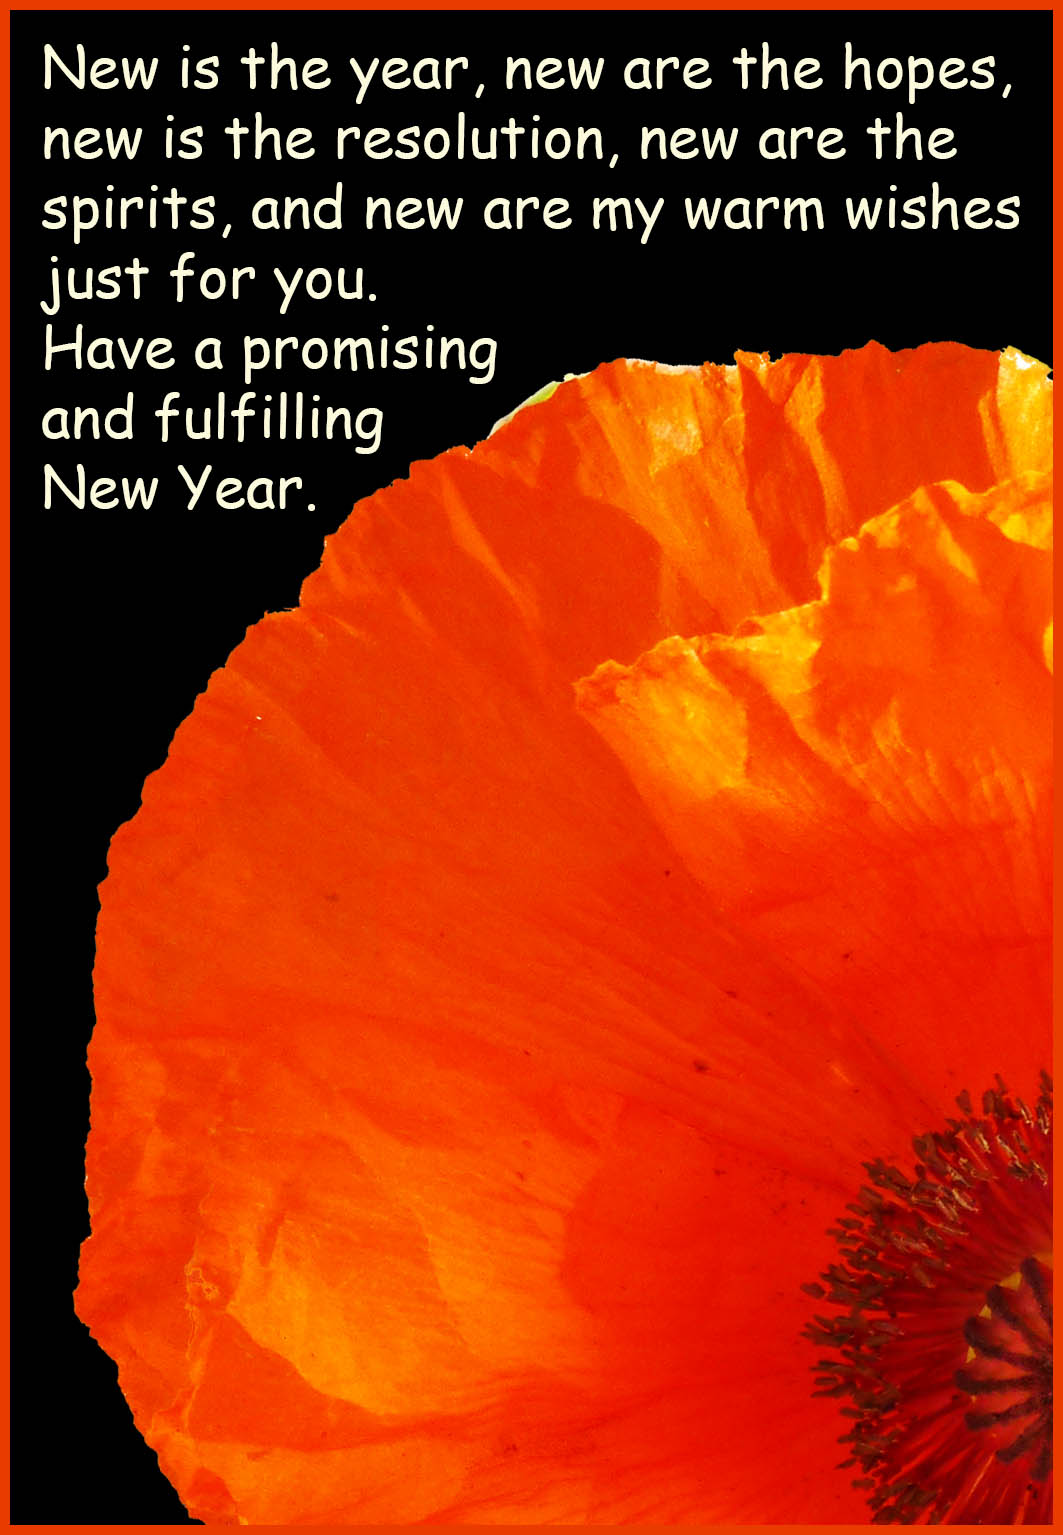 New Year card with red poppy